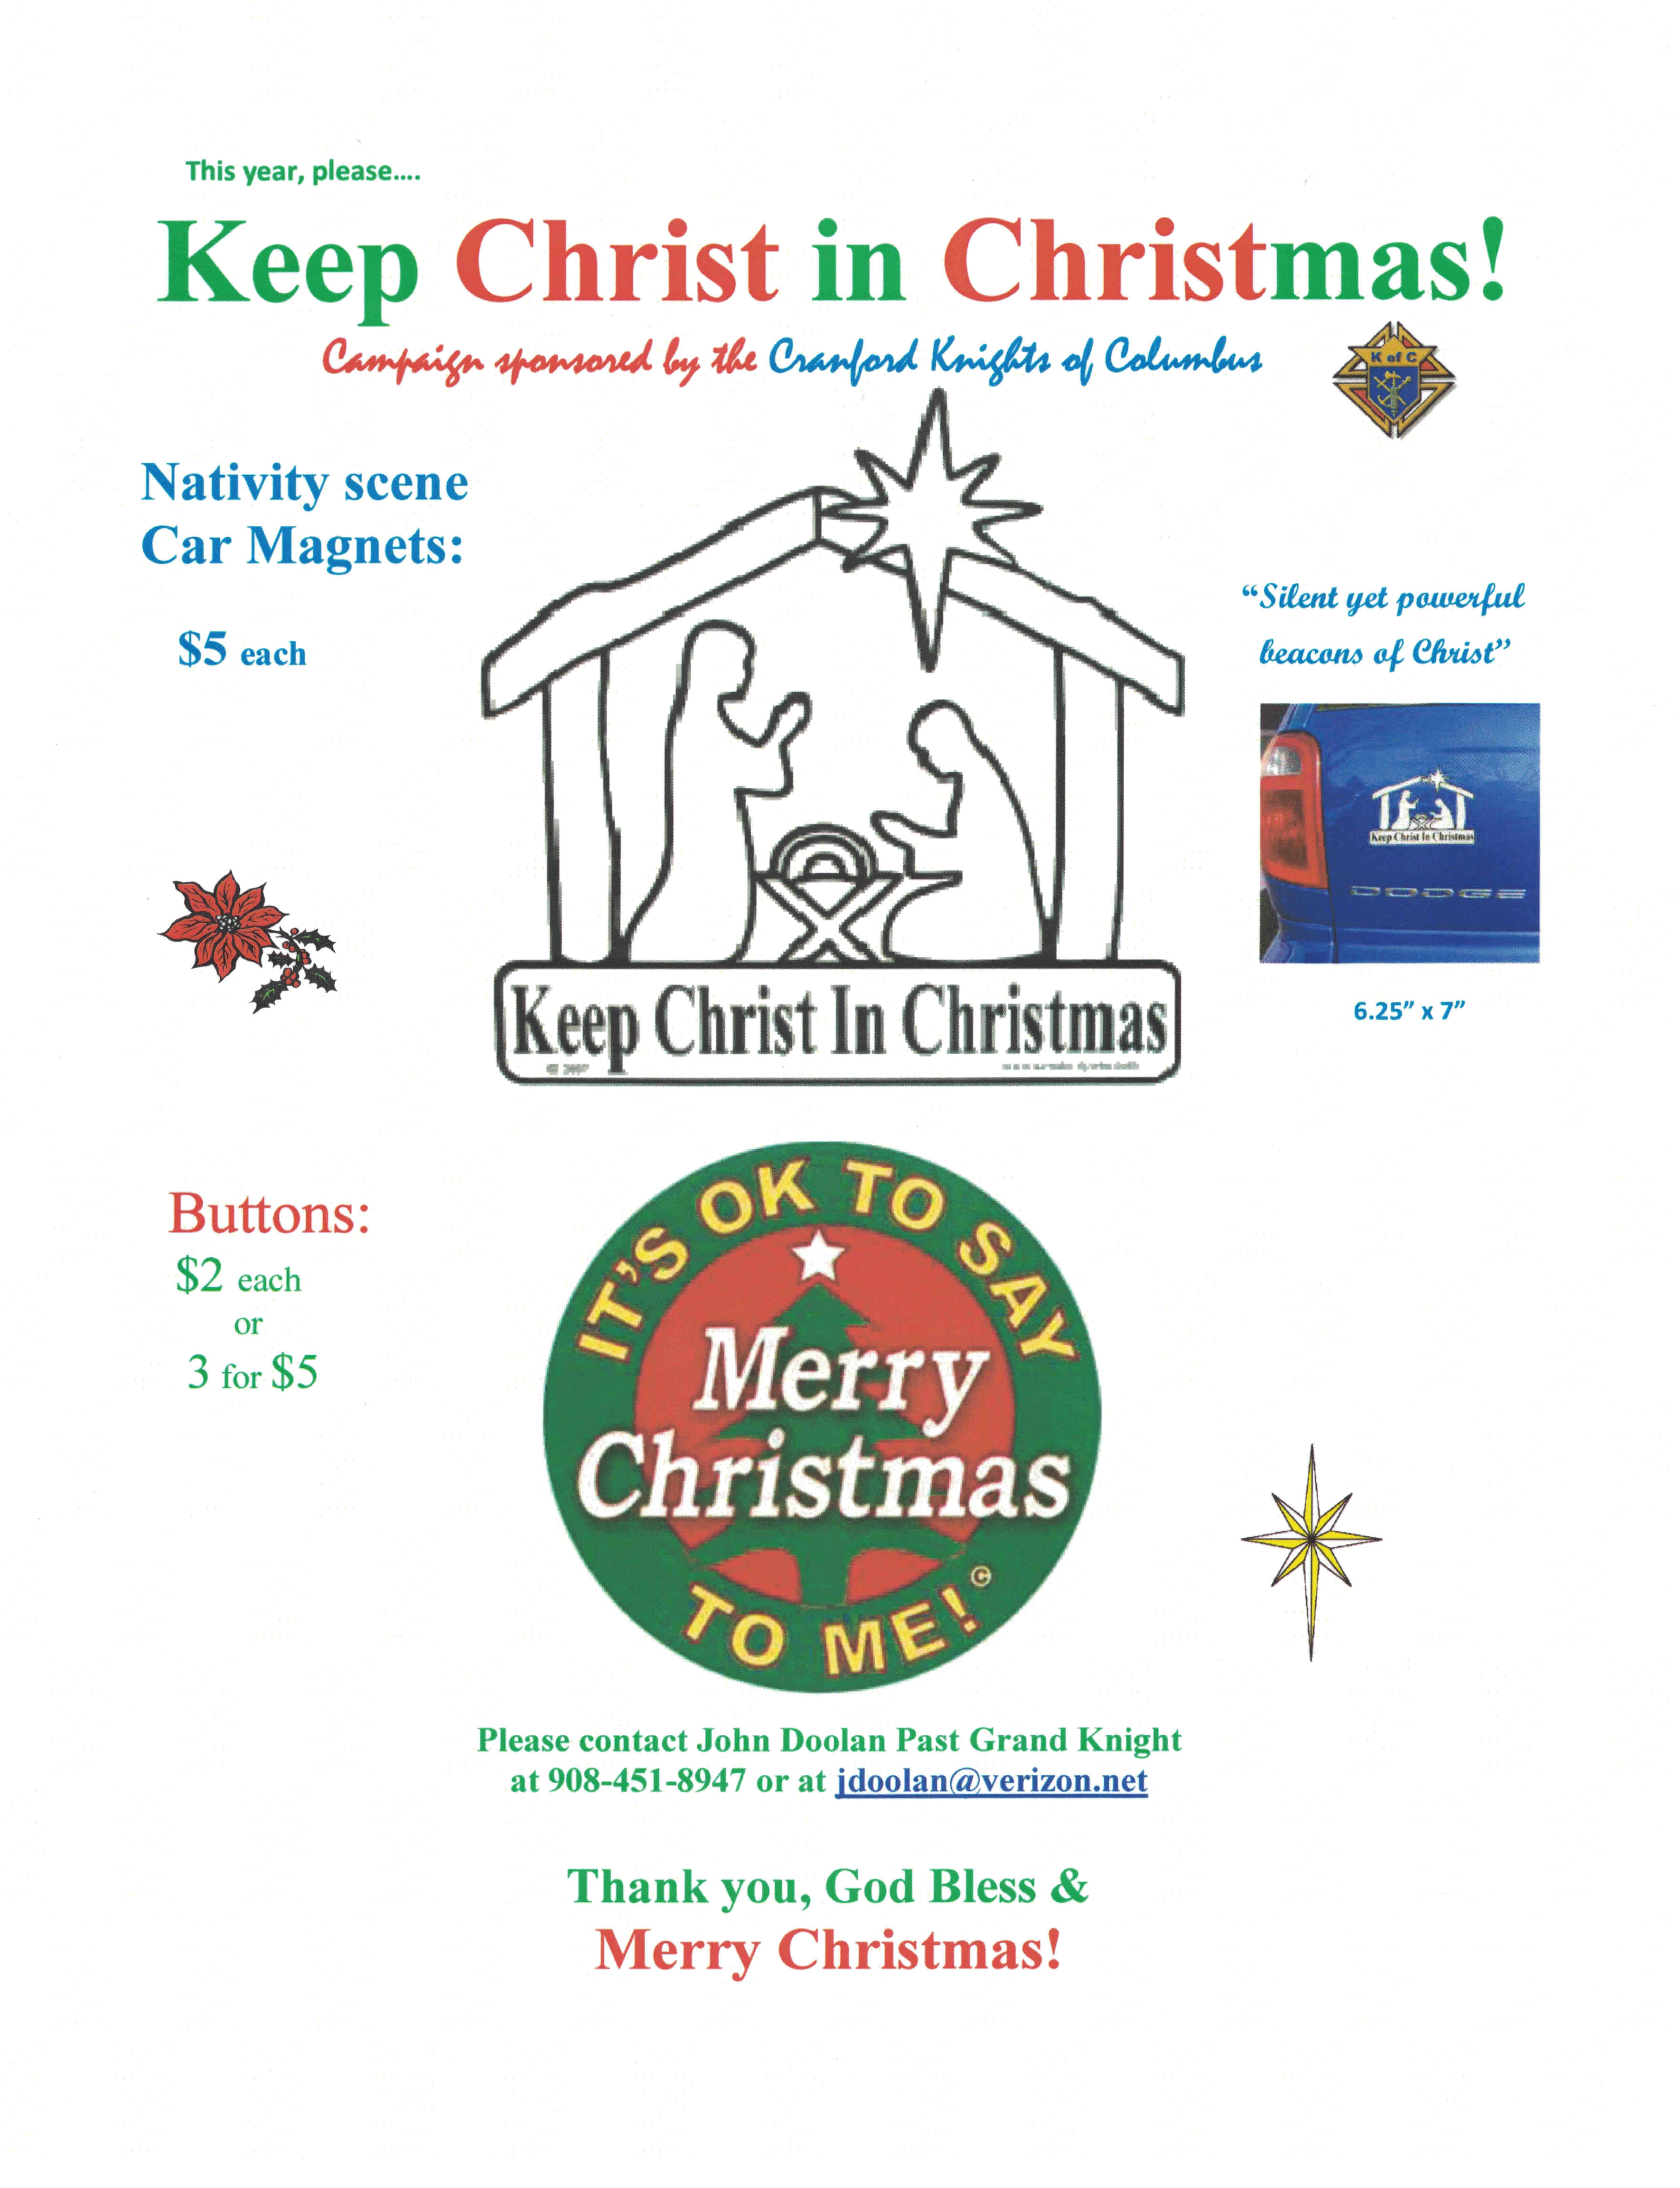 c74ec581c15eb704fe54_2017_K_of_C_Keep_Christ_in_Christmas__It_s_OK_to_Say_Merry_Christmas_to_Me_Button_Flyer.jpg